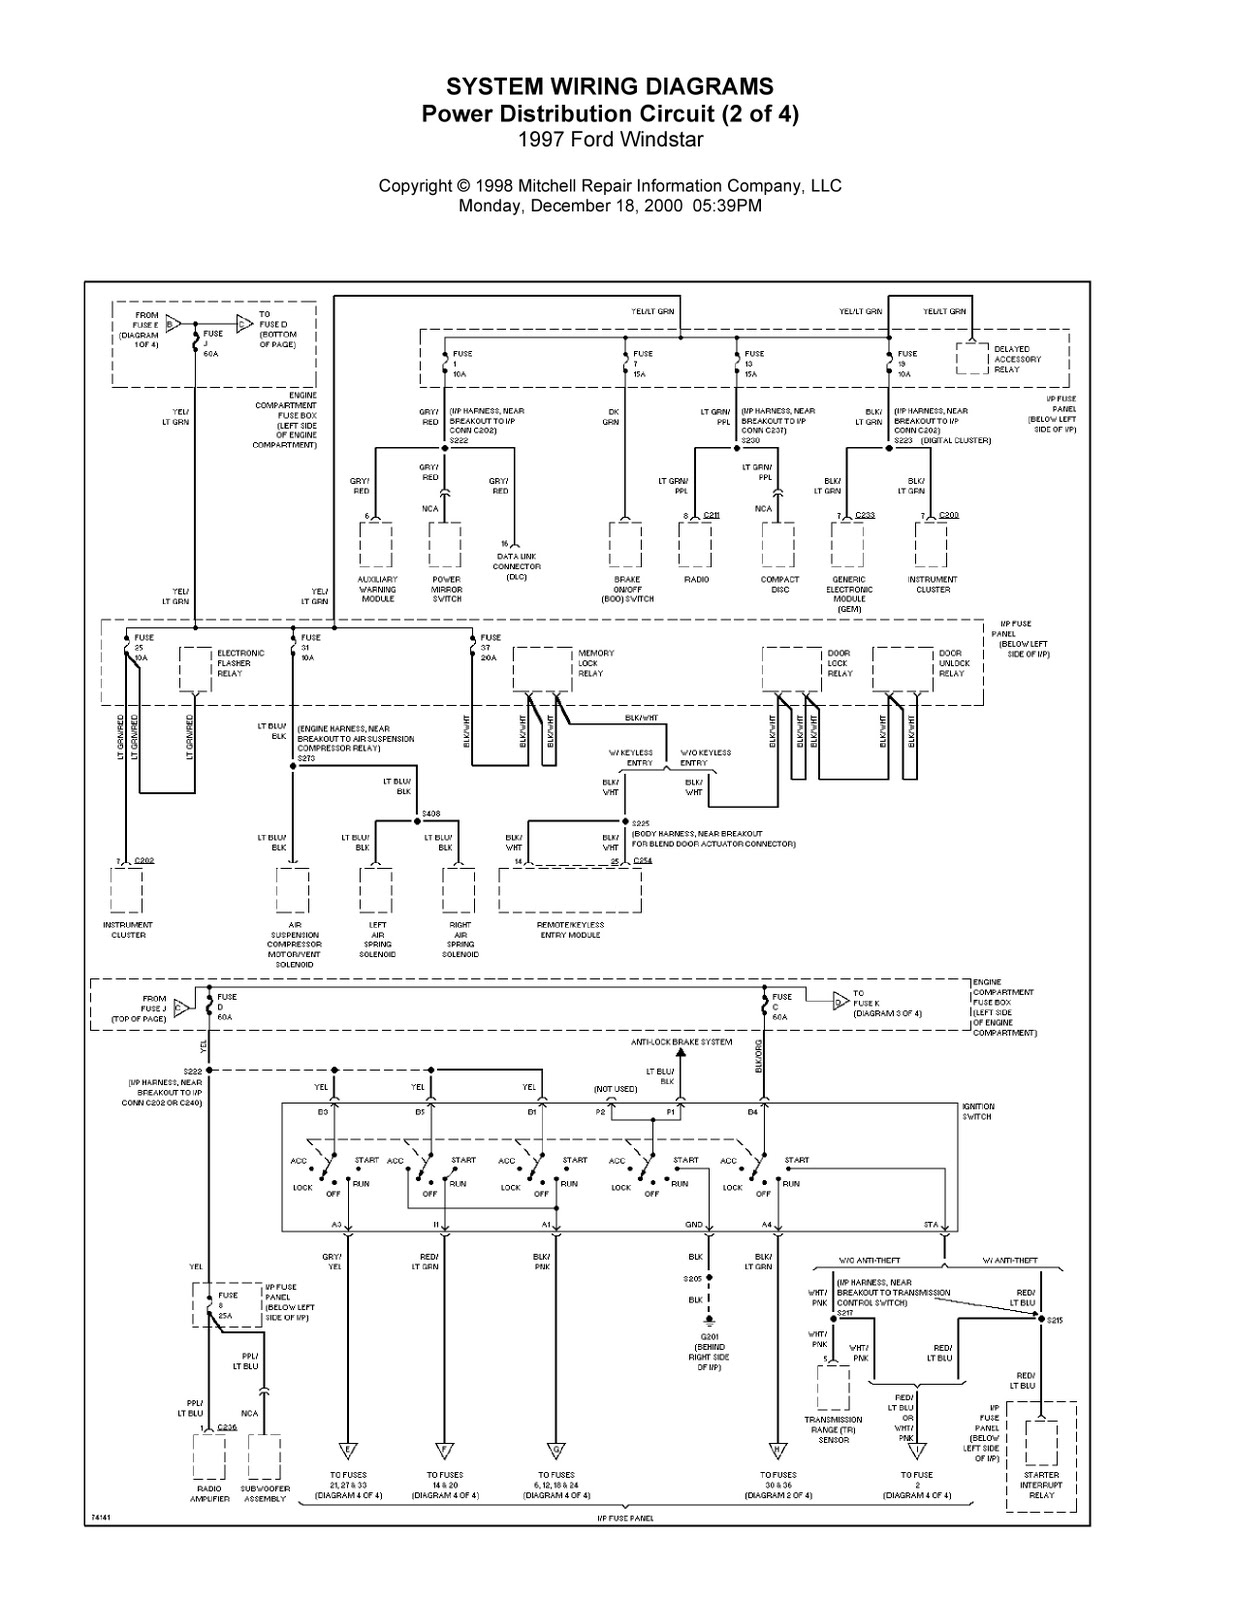 1997 ford windstar complete system wiring diagrams ... 1996 windstar ac wire diagram cj7 ac wire diagram